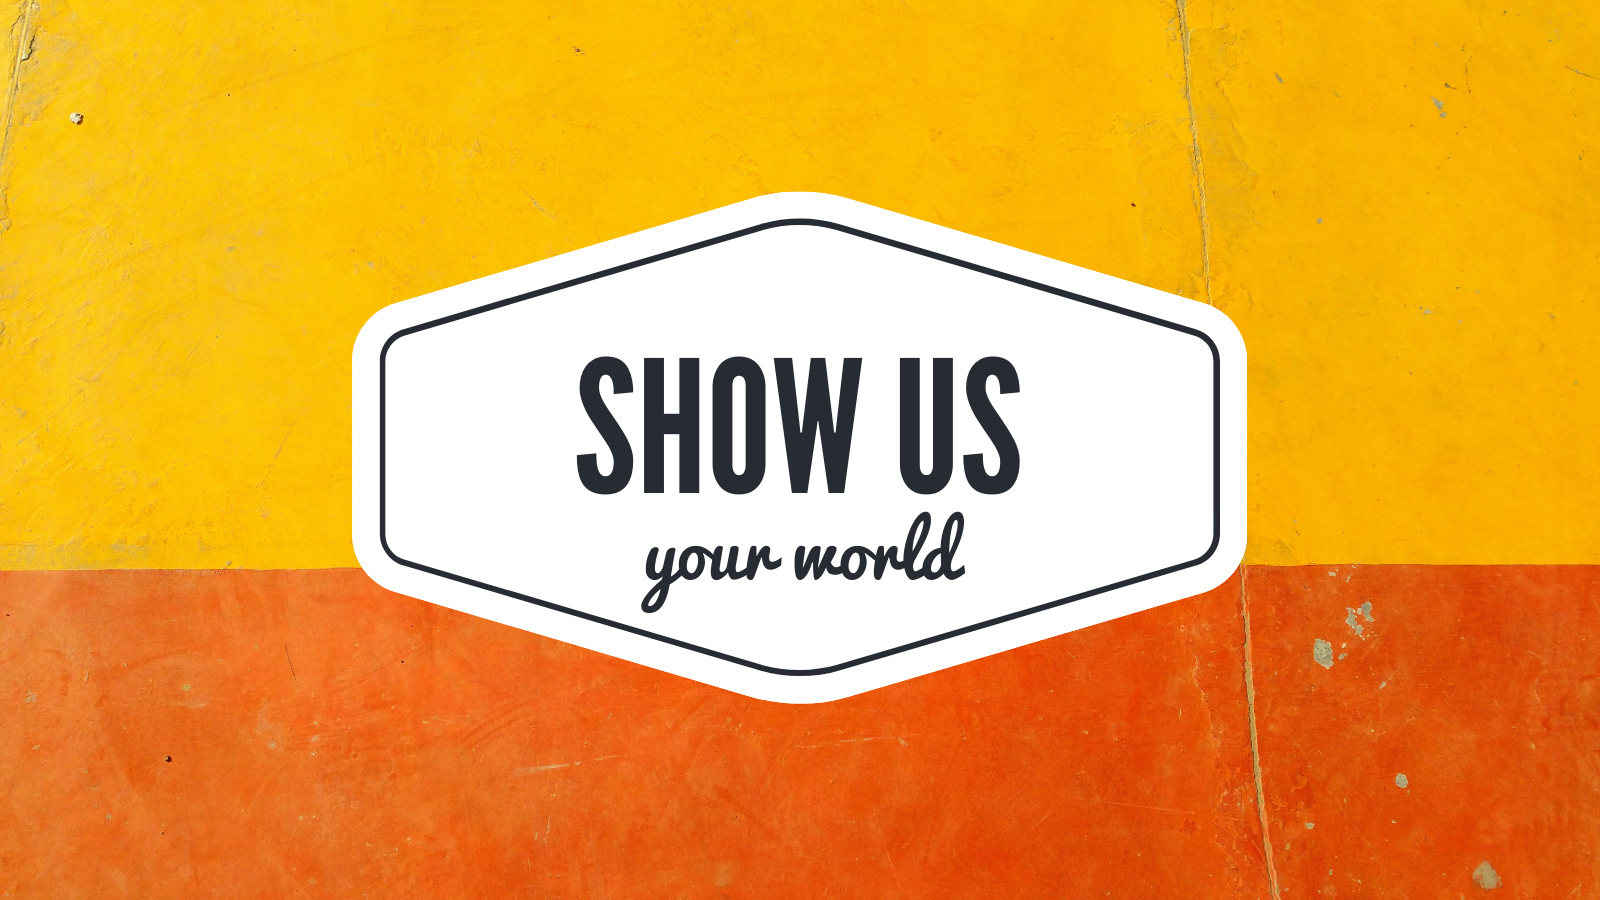 show us your world